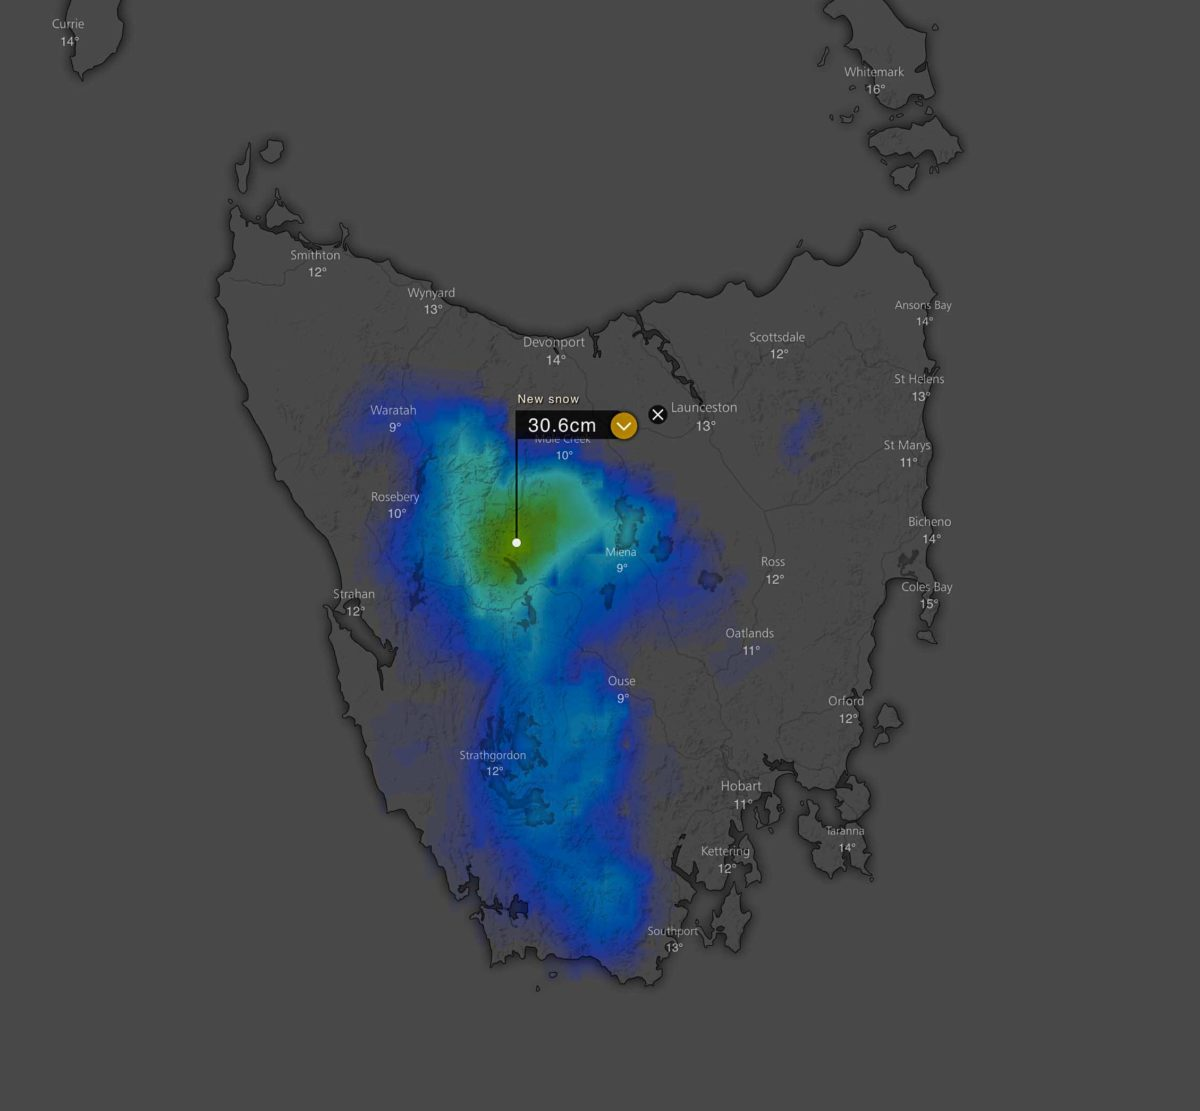 Forecast 3 day snowfall accumulation over TAS via Windy